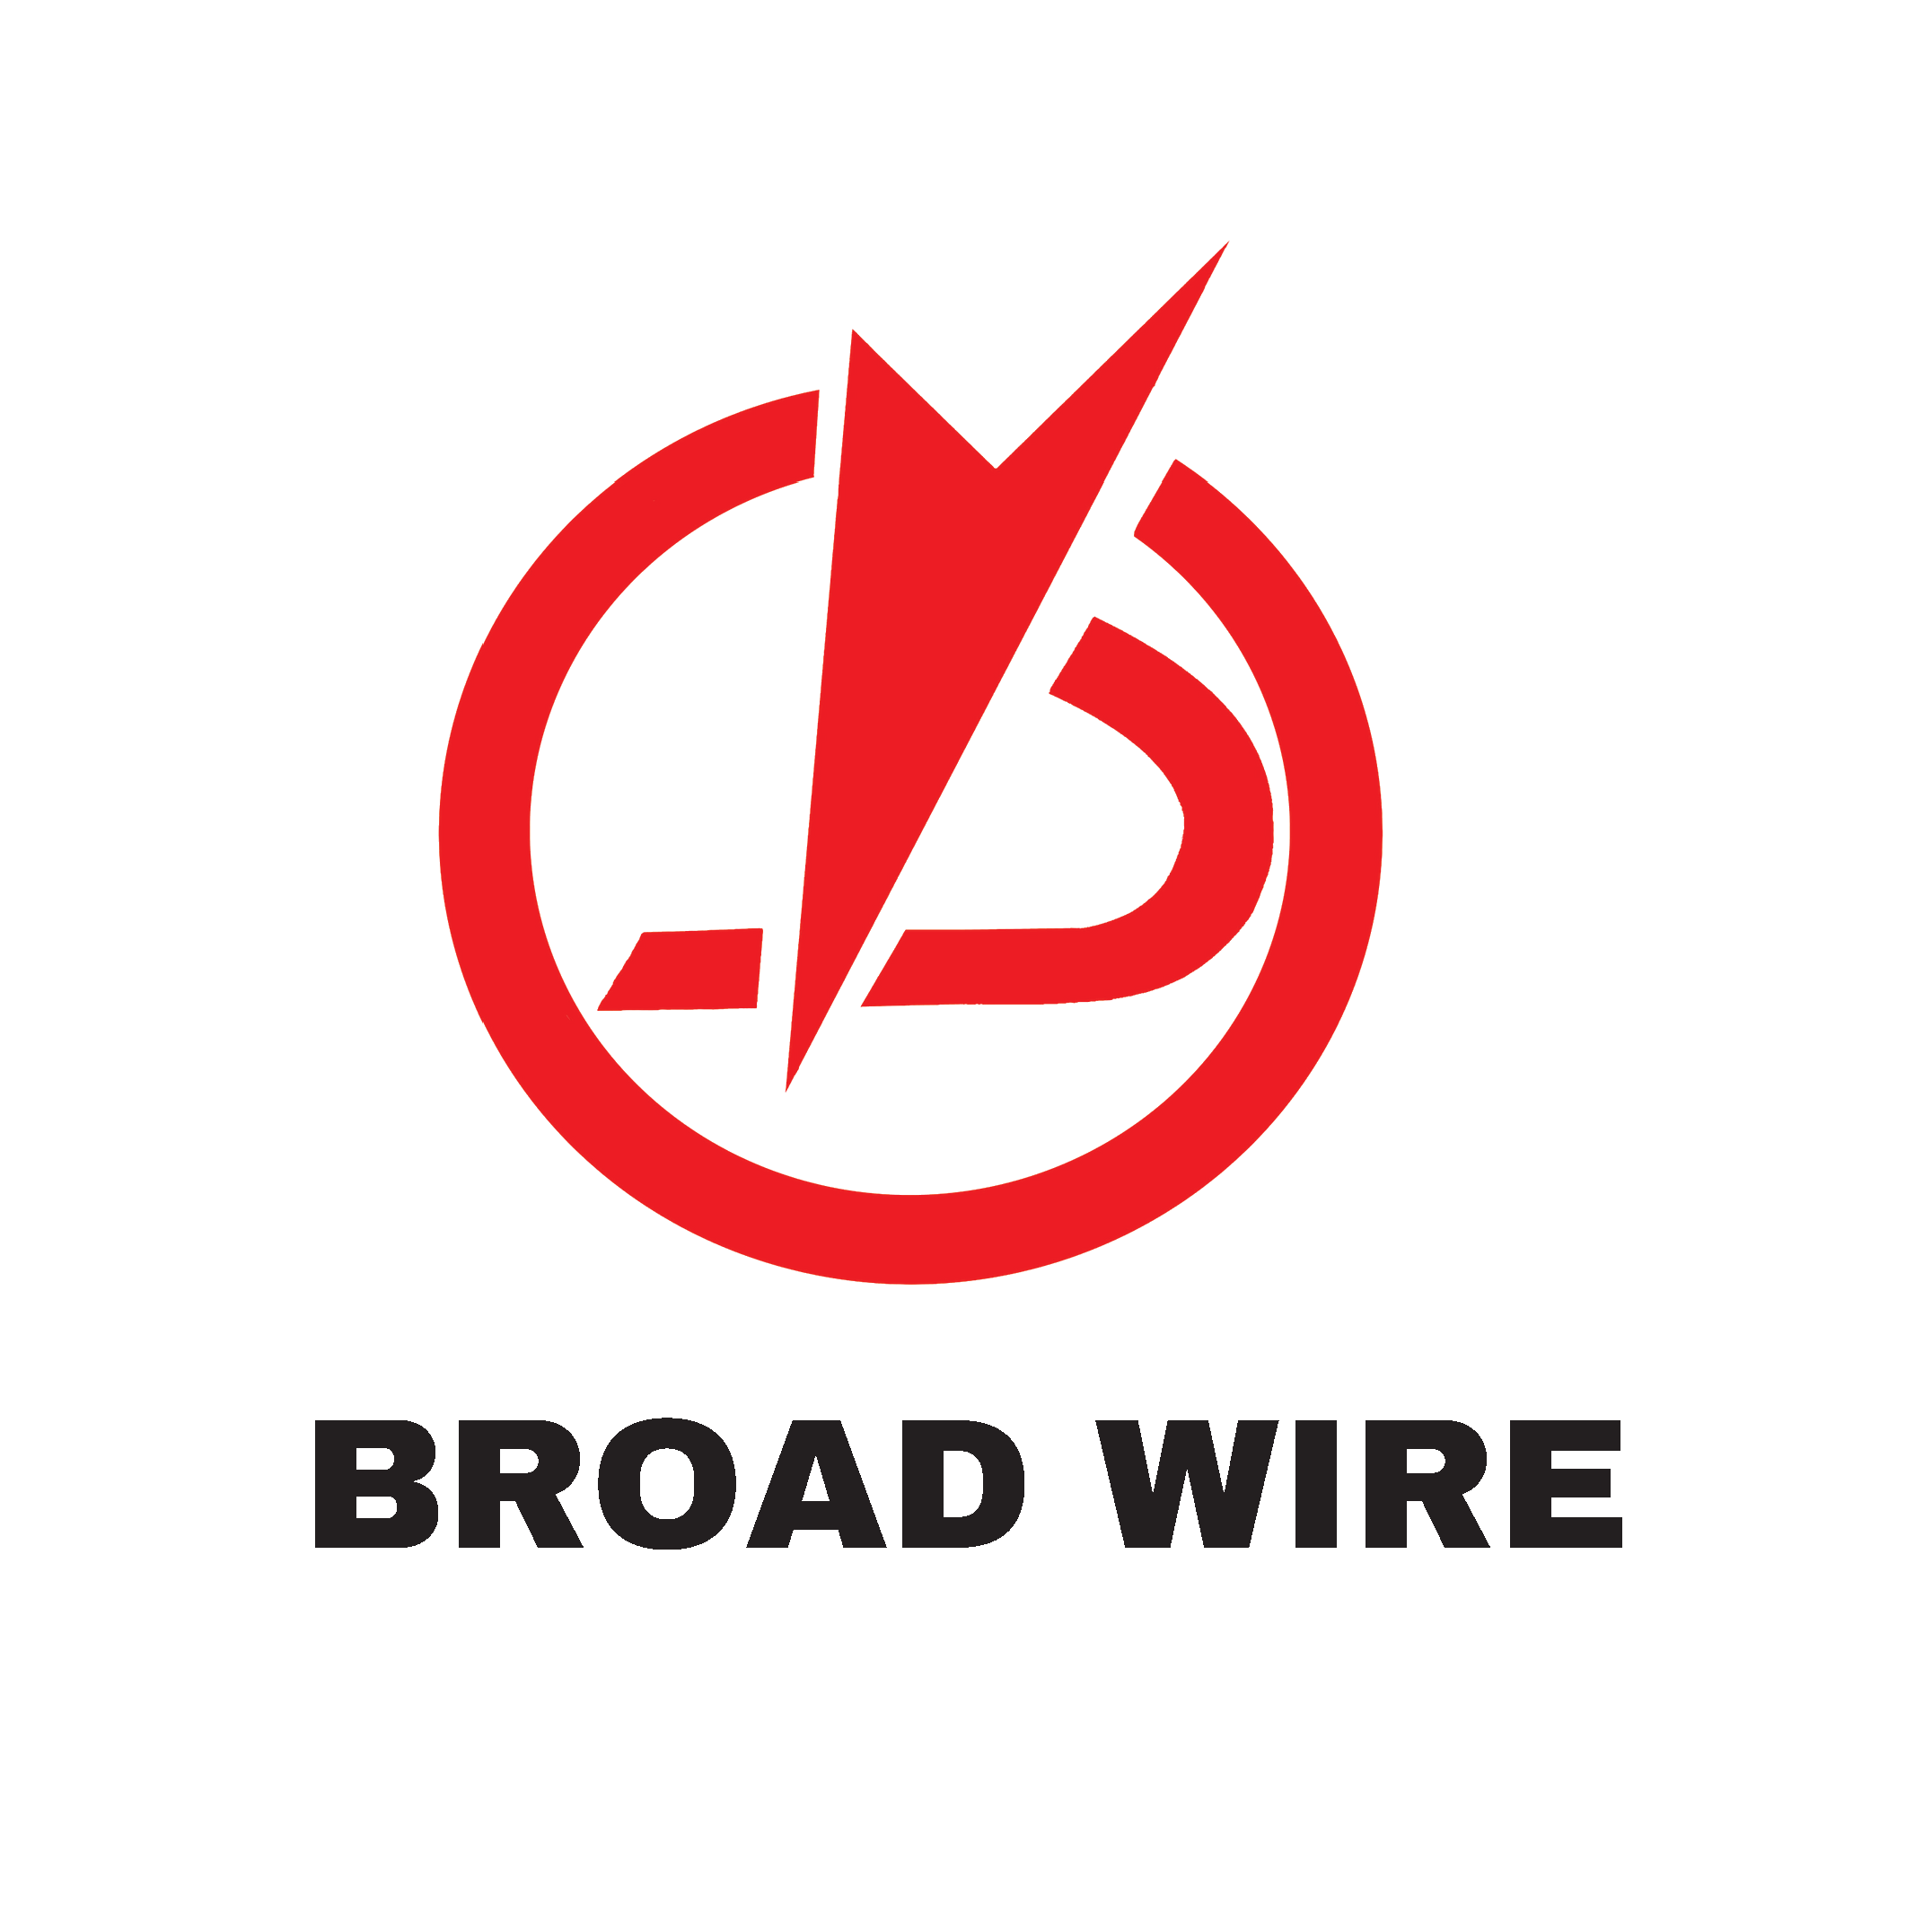 SHANXIYUCI BROAD WIRE PRODUCTS CO.LTD.